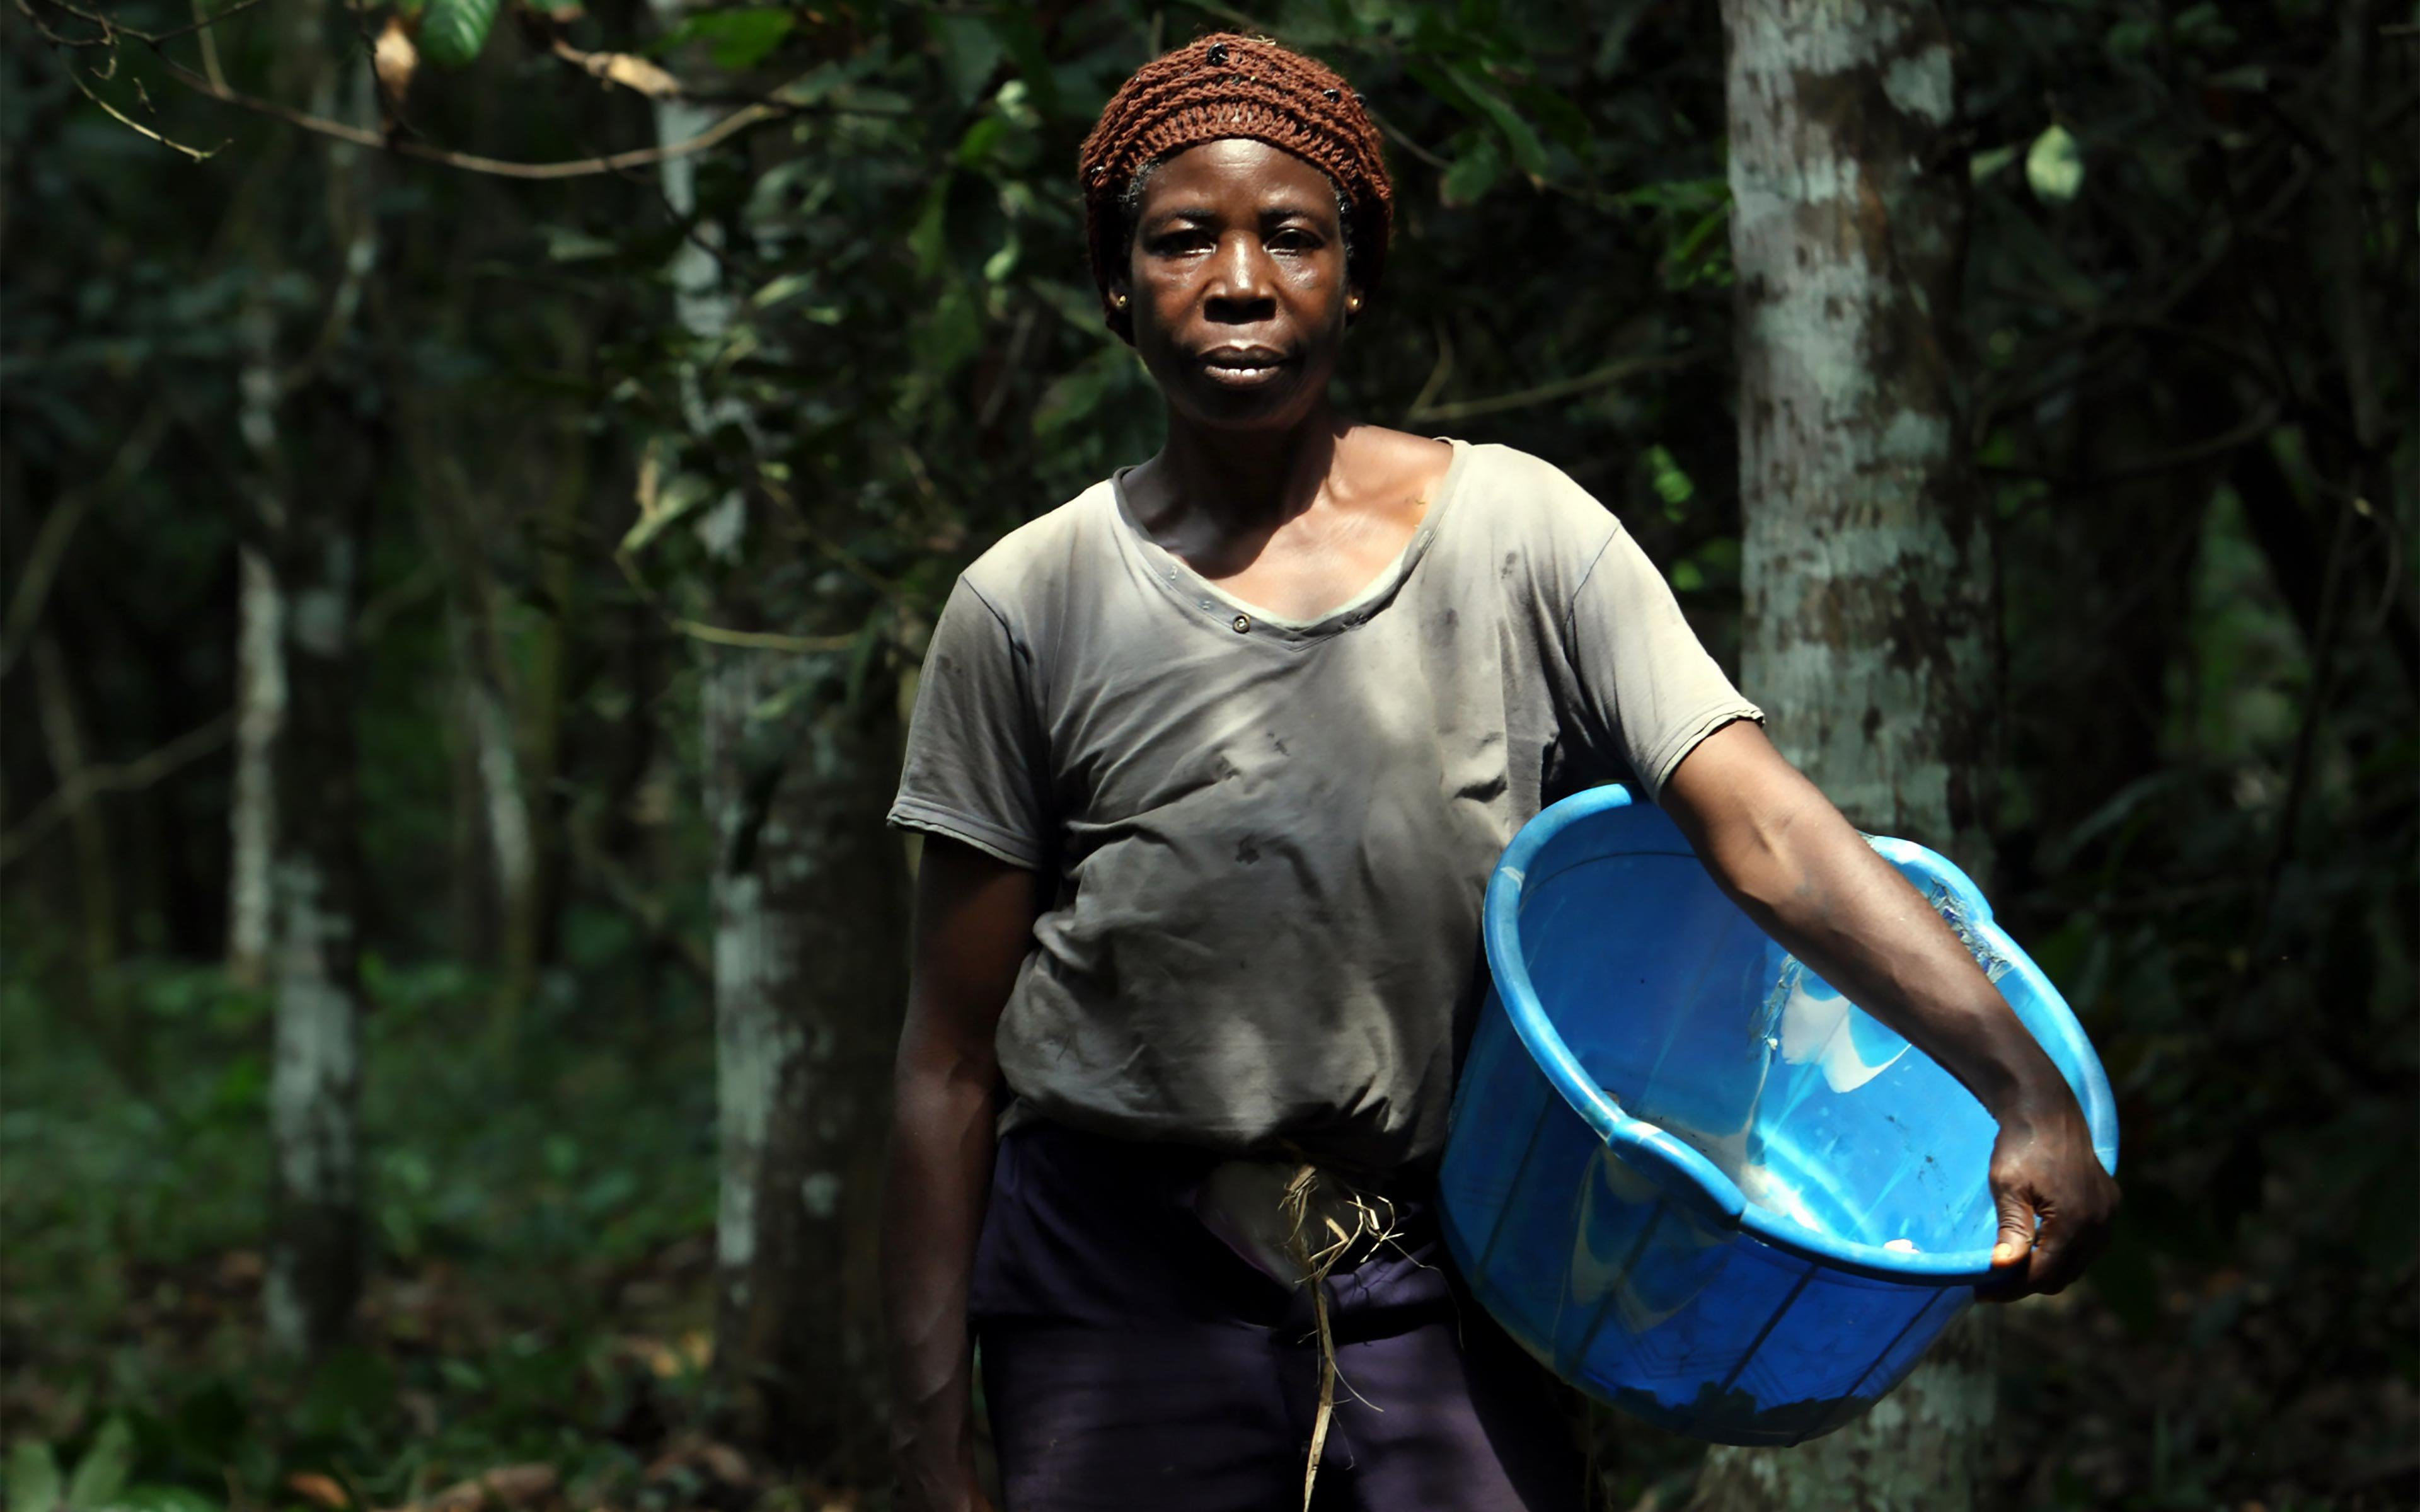 Anna Iyiola, a cocoa farmer, is pictured after harvest at her cocoa farm in Ayetoro-Ijesa, Nigeria. Our Behind the Brands campaign works to protect the rights of female cocoa farmers in companies' supply chains.